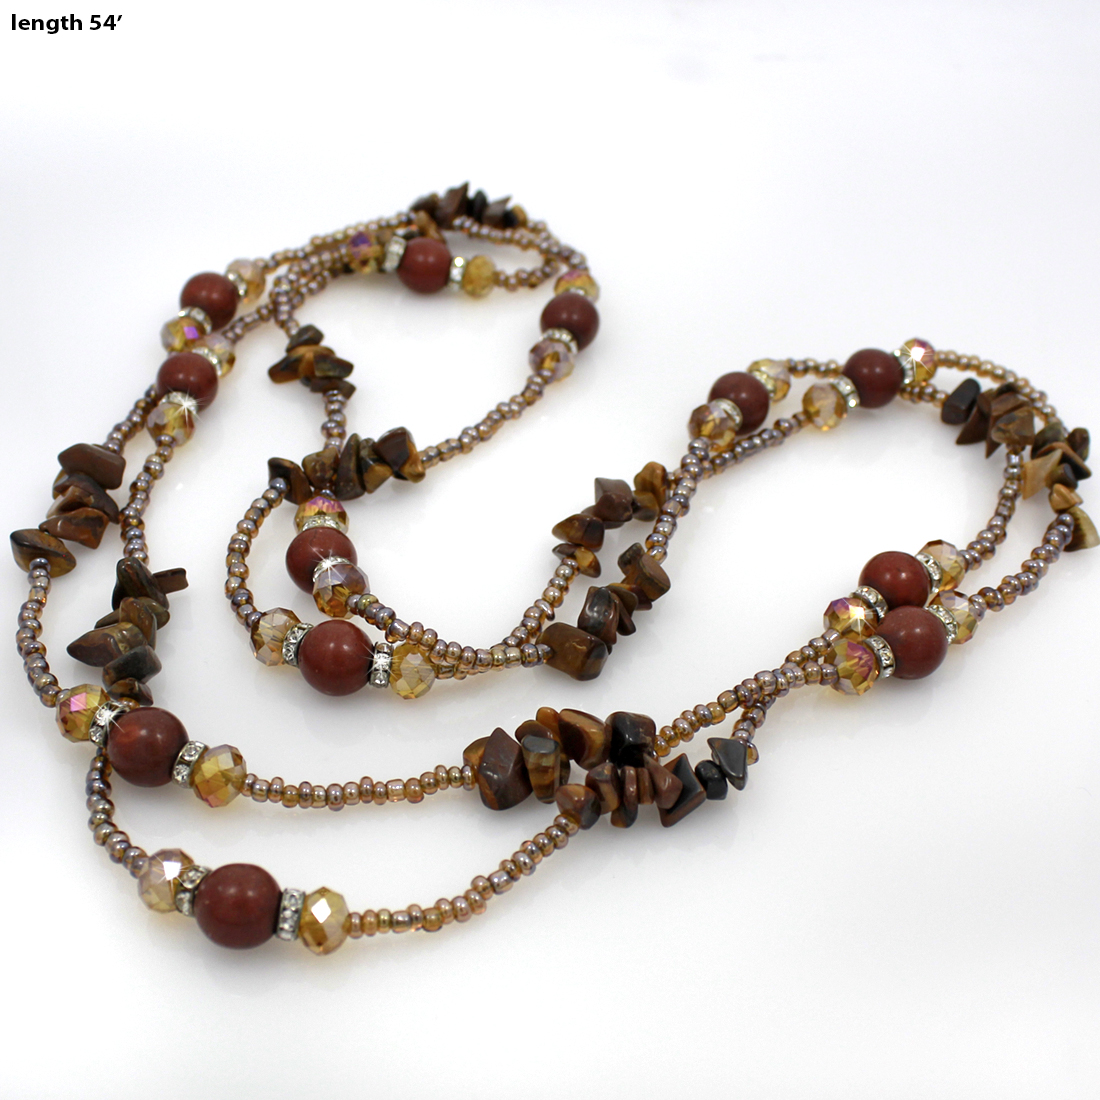 NKL04-BROWN - NKL04-BROWN WHOLESALE GENUINE CRYSTAL AND GLASS NECKLACE SET